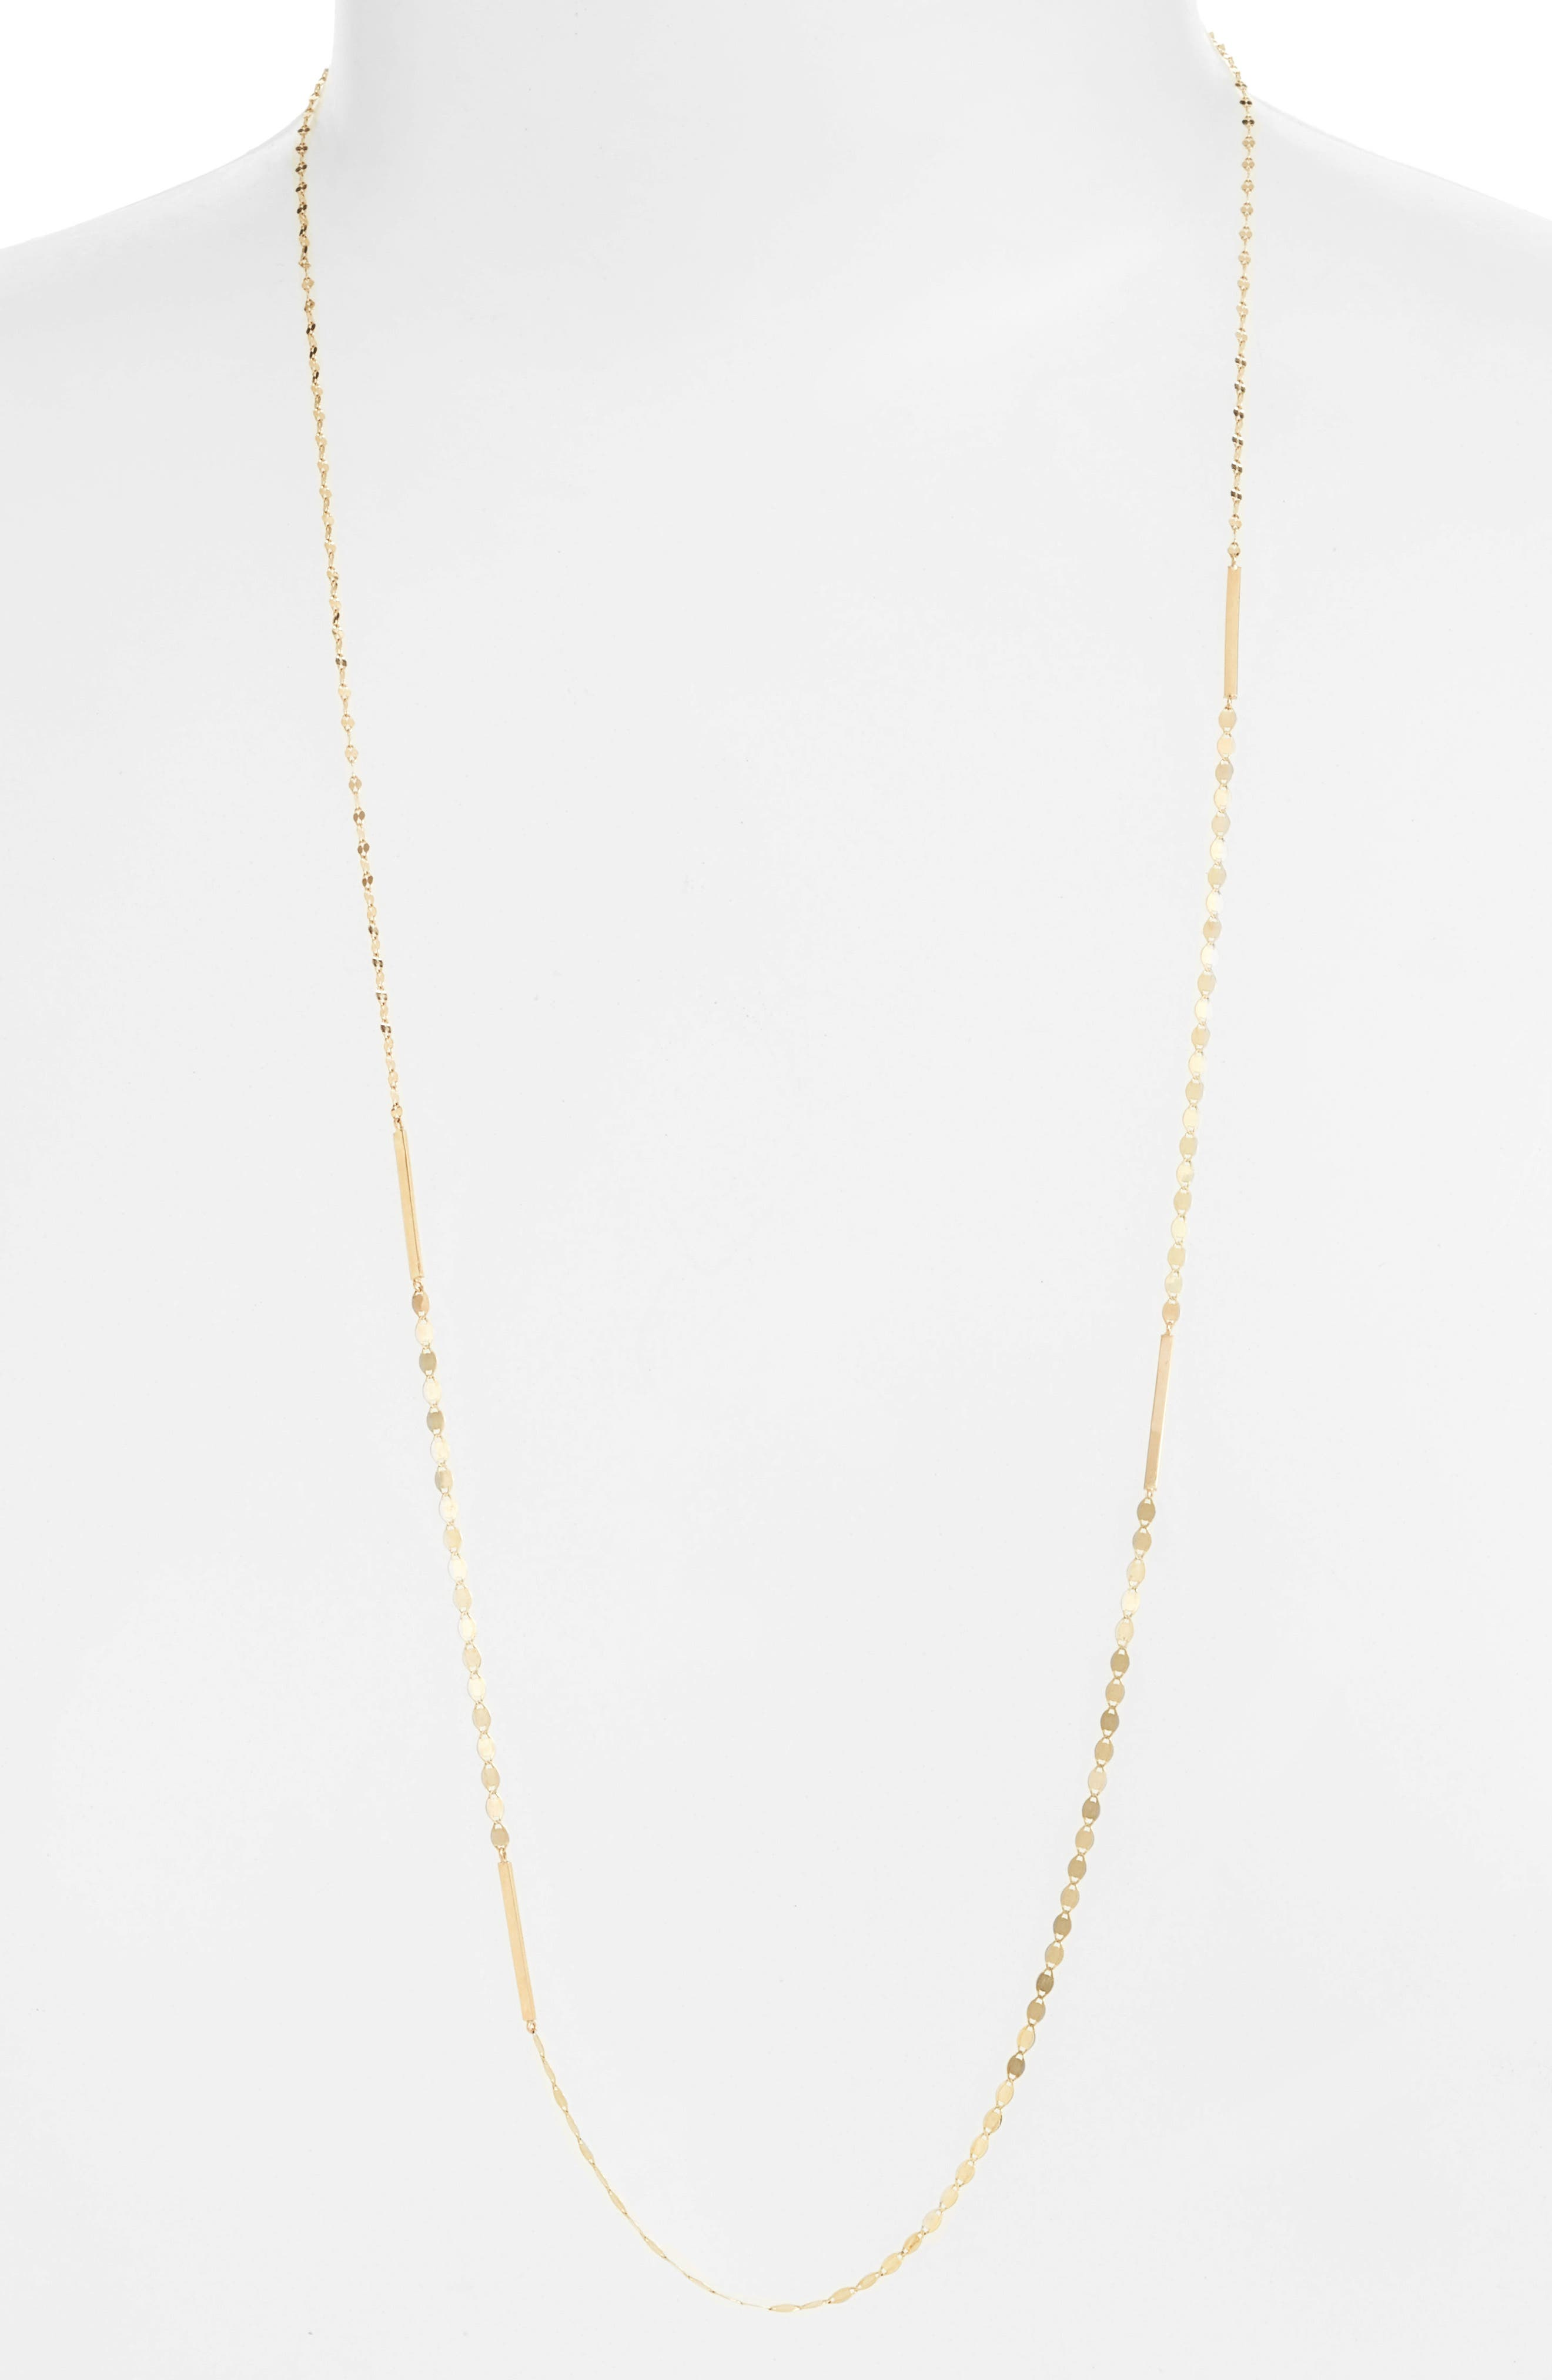 Lana Jewelry Nude Remix Bar Long Necklace